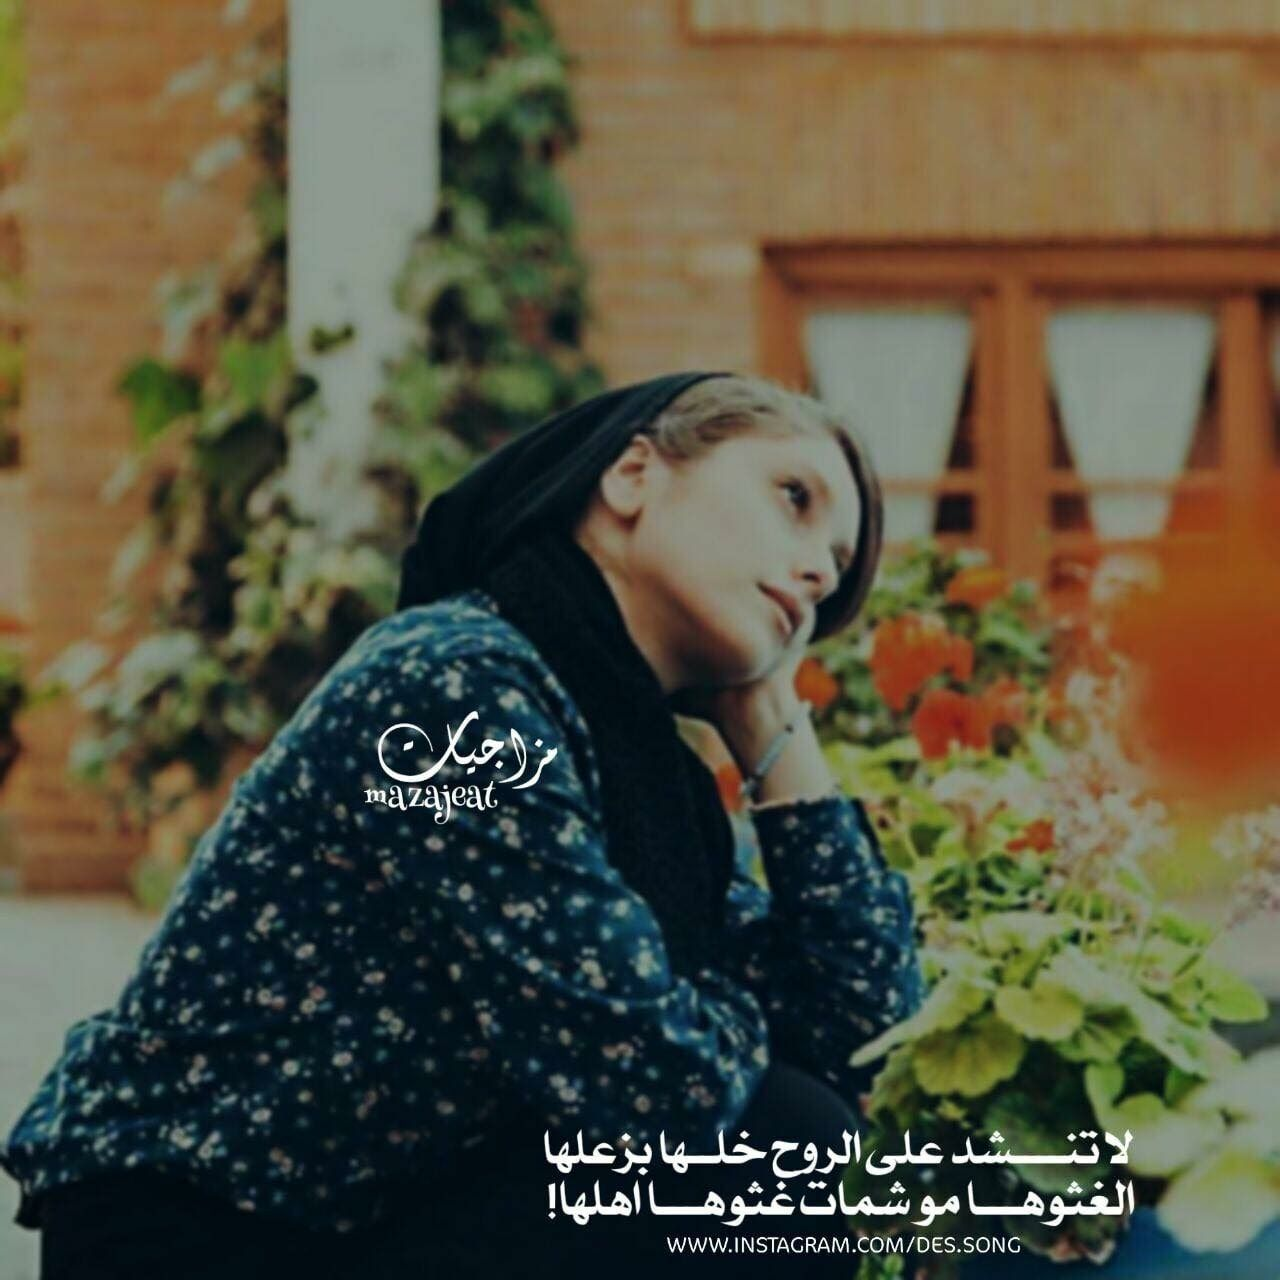 Pin By Gh On قفشات شعريه Love Words Cute Wallpapers Arabic Words